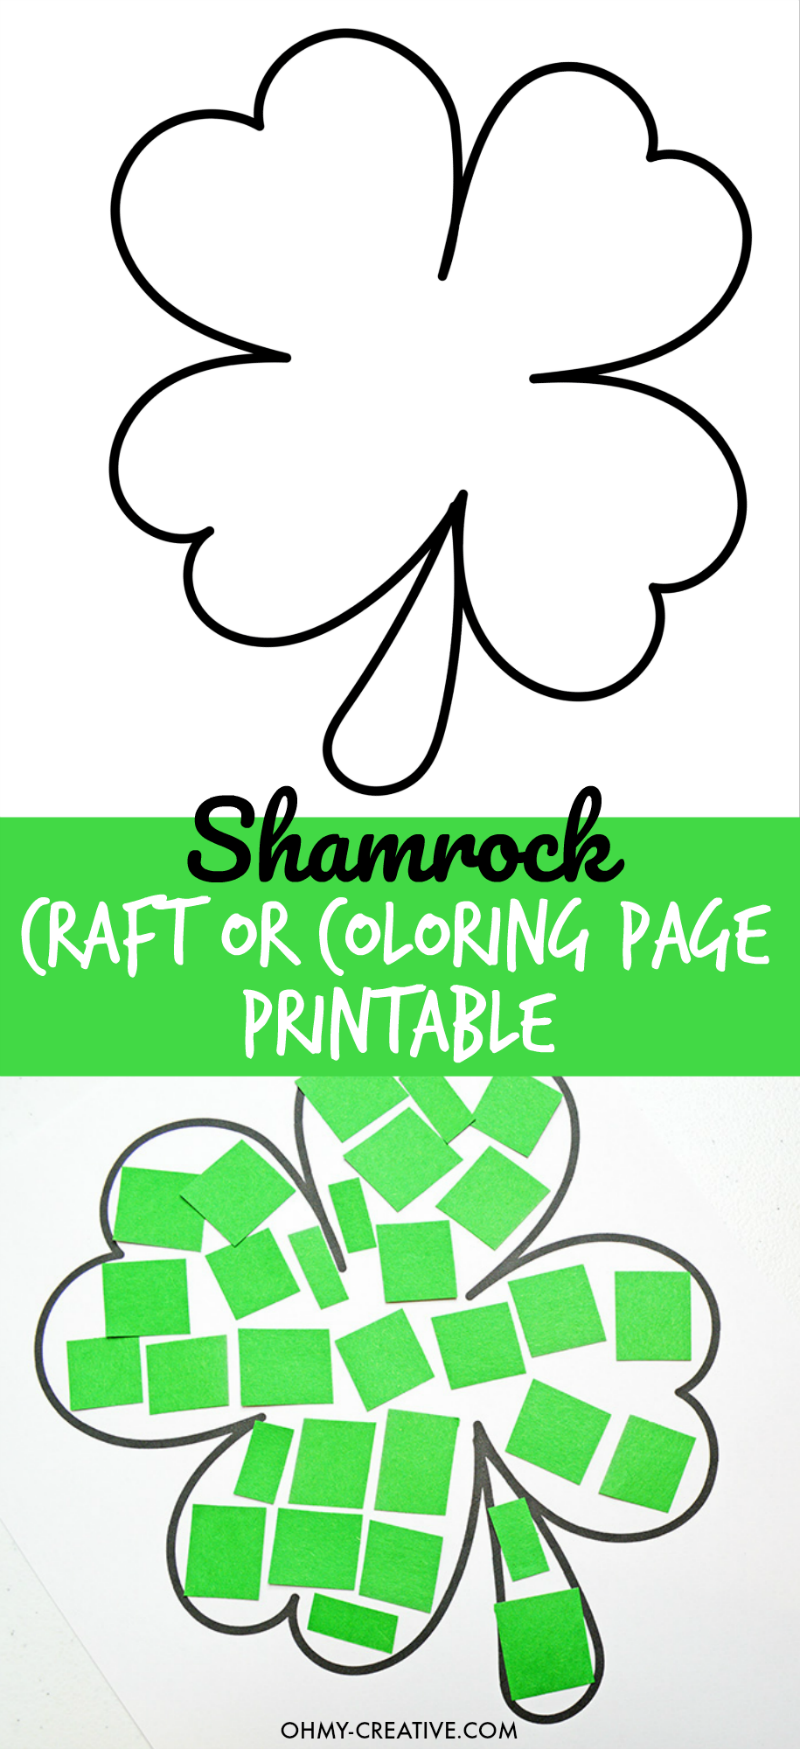 Cut And Paste Shamrock Template